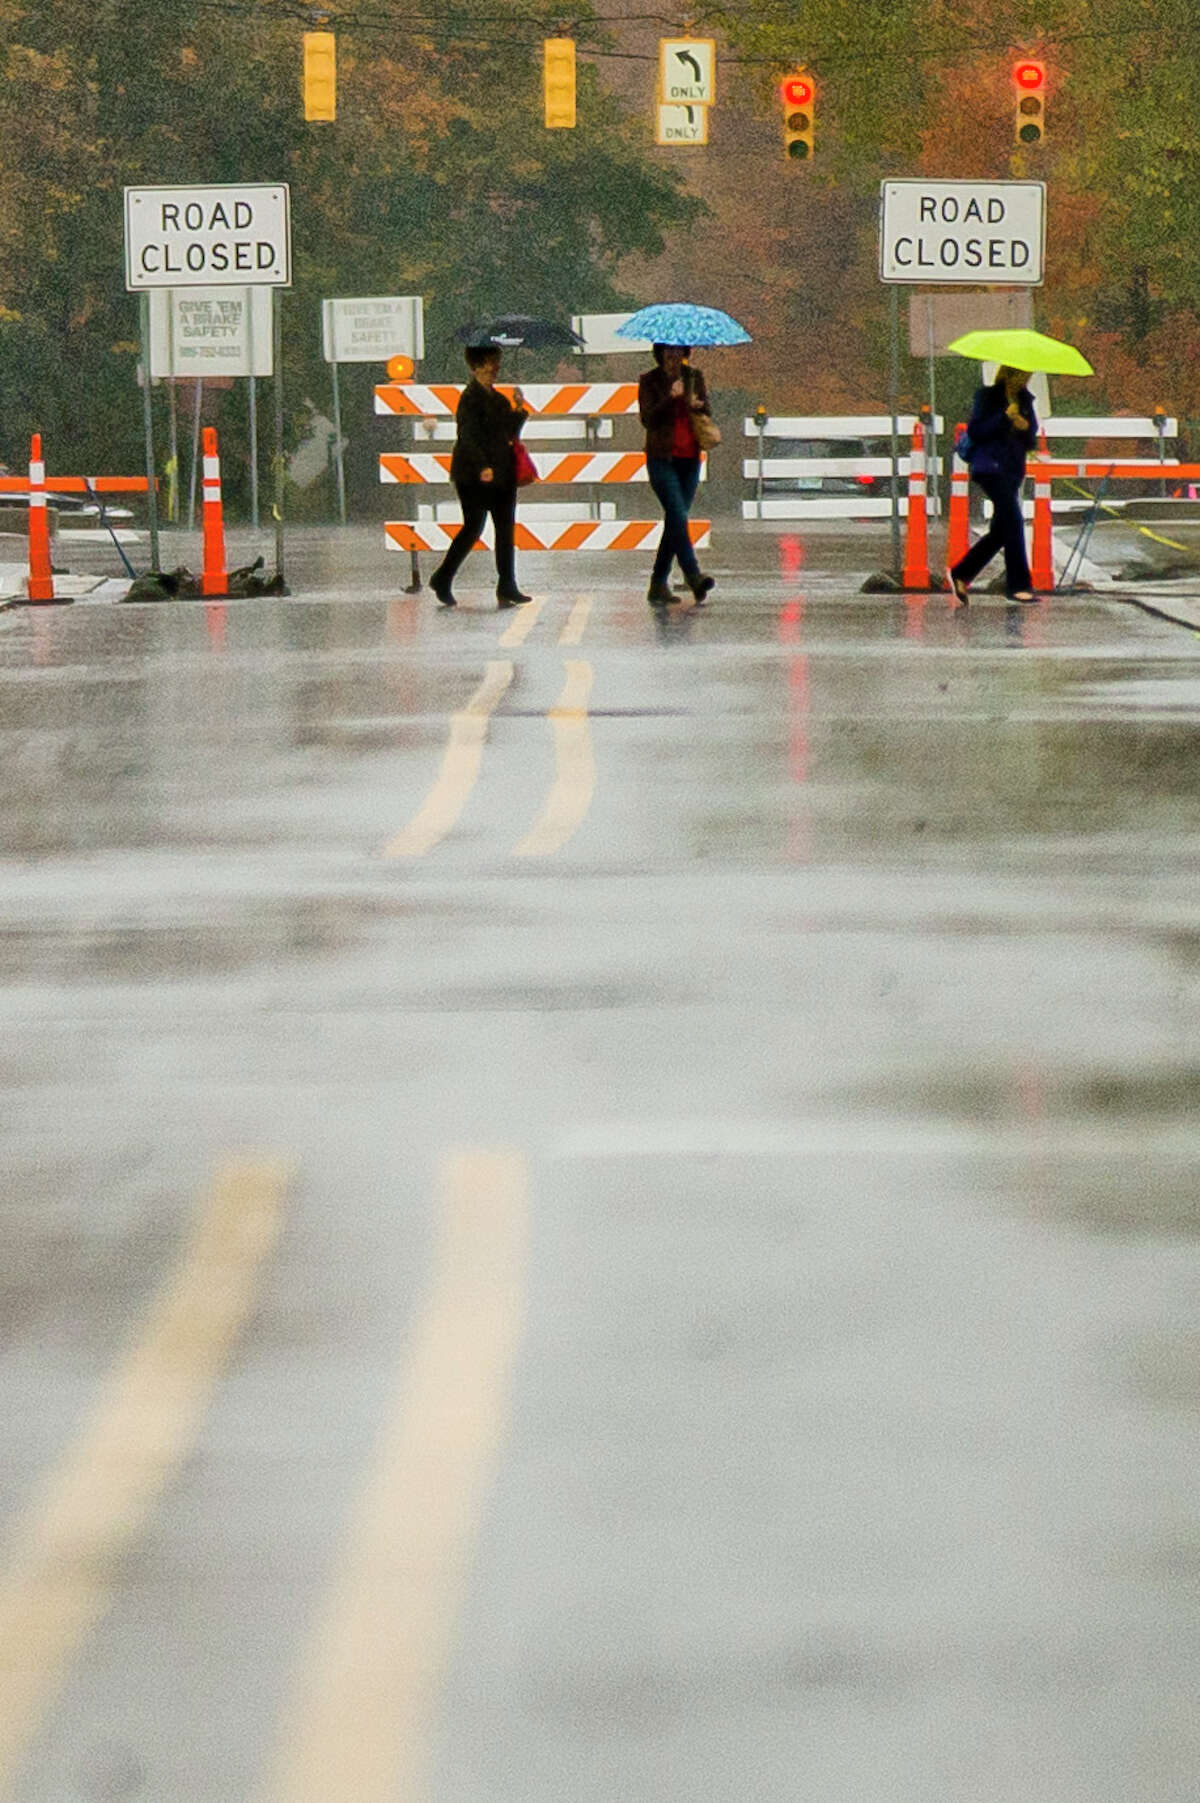 People walk across Main Street carrying umbrellas on Monday, Oct. 23, 2017. The Tittabawassee River is expected to crest at about 1 p.m. Wednesday at 20 feet, 4 feet below flood stage. As of 1:15 p.m. Monday, the river was at 10 feet. (Katy Kildee/kkildee@mdn.net)